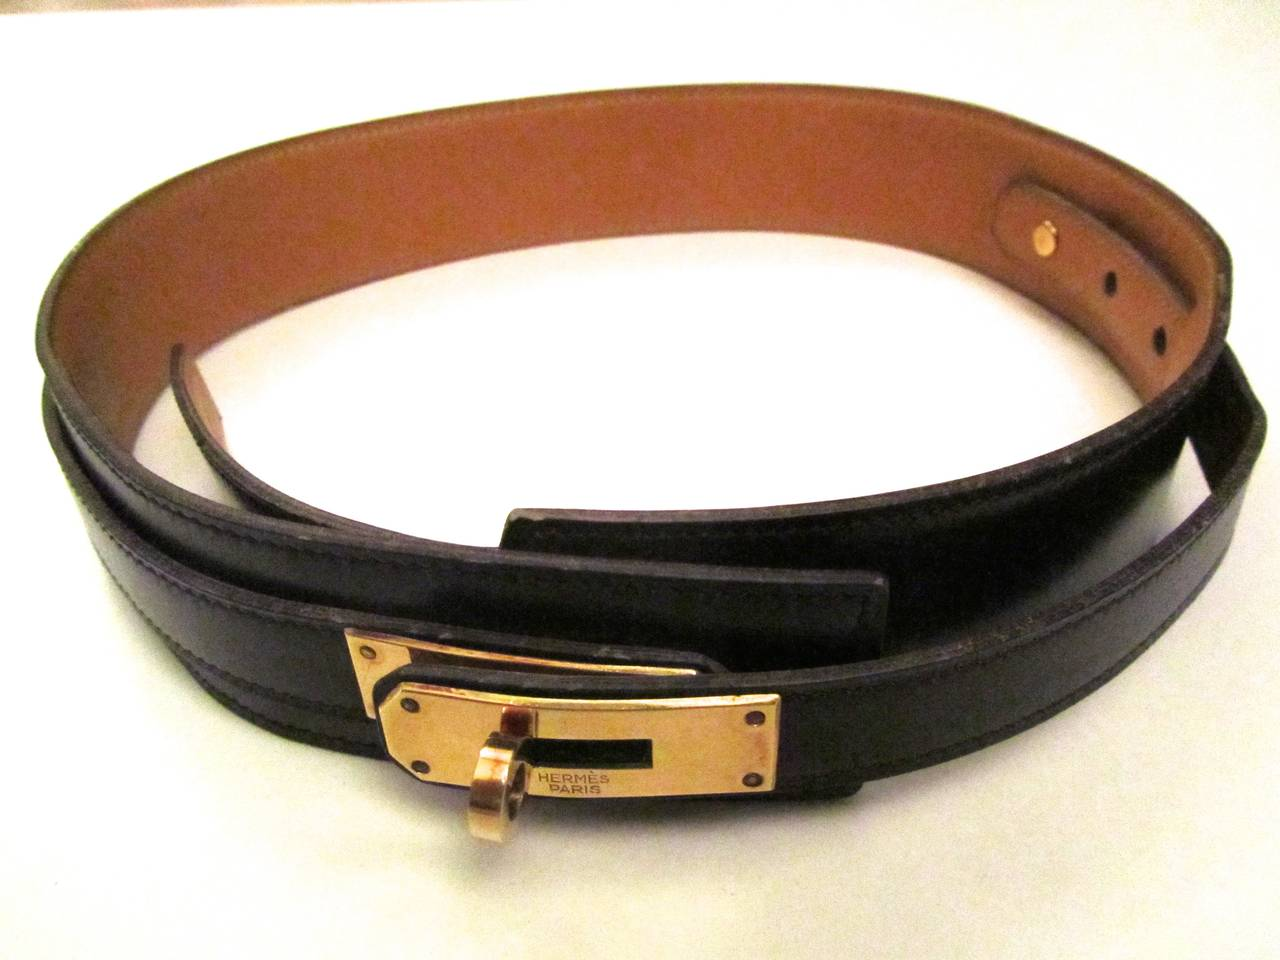 Hermes Kelly Style adjustable belt that is adjustable from a 24 inch (60 cm) to a 26 inch (65 cm.) It is a small sizing. Color is brown and is in excellent condition. Belt has three sizing holes that can be adjusted from the inside of the belt with